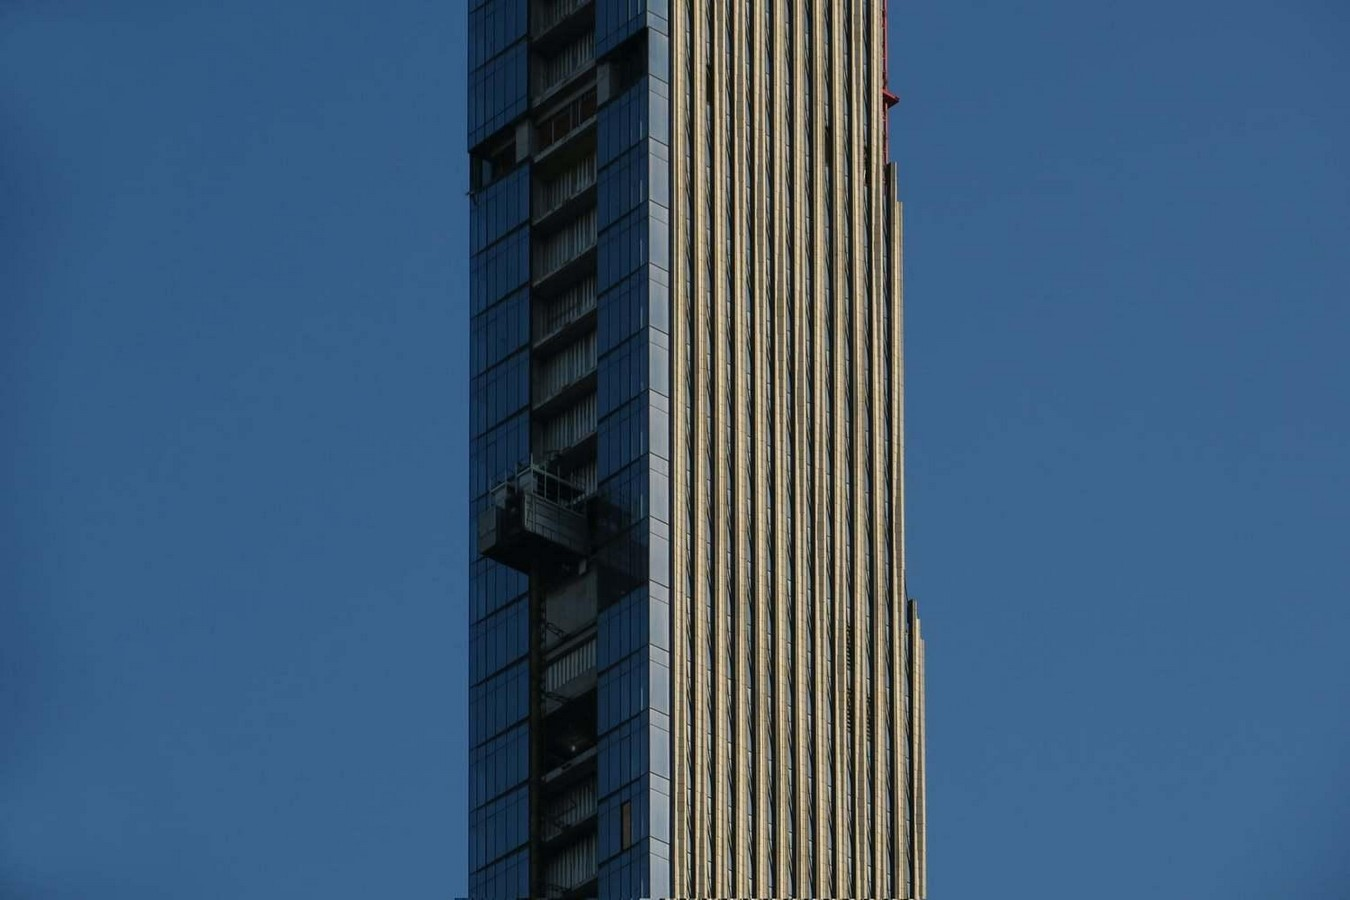 Paul Clemence releases images for the on-going construction works on 111 West 57th designed by SHoP - Sheet13